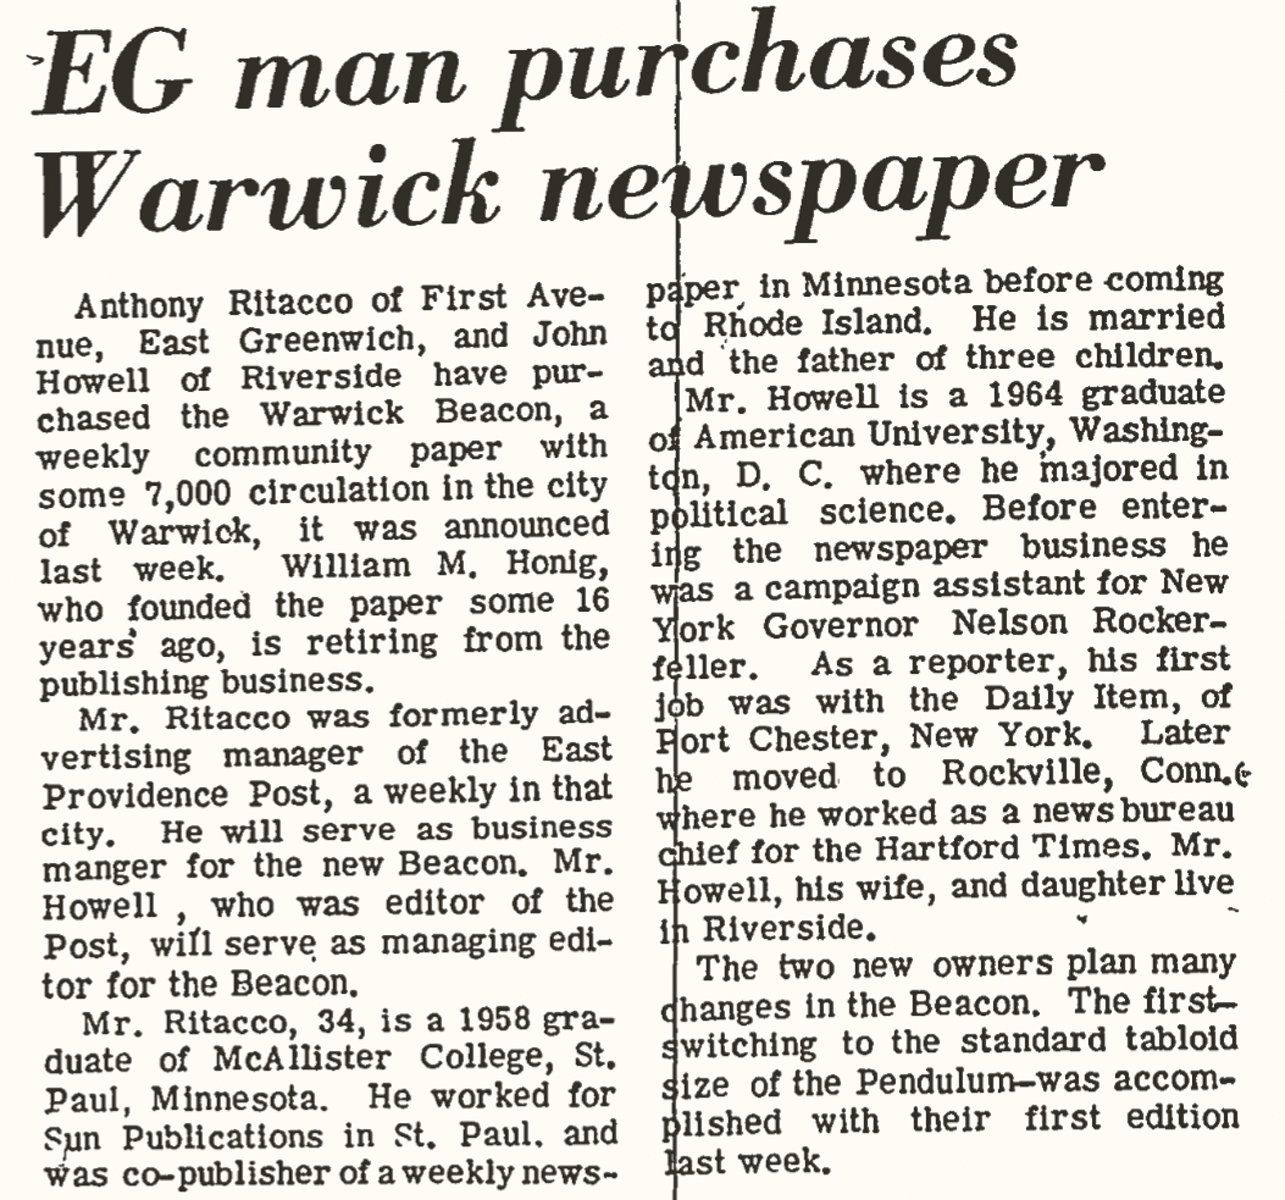 MAKING NEWS: A 1969 clip from the East Greenwich Pendulum announces news of the Warwick Beacon's sale to John Howell and Anthony Ritacco.